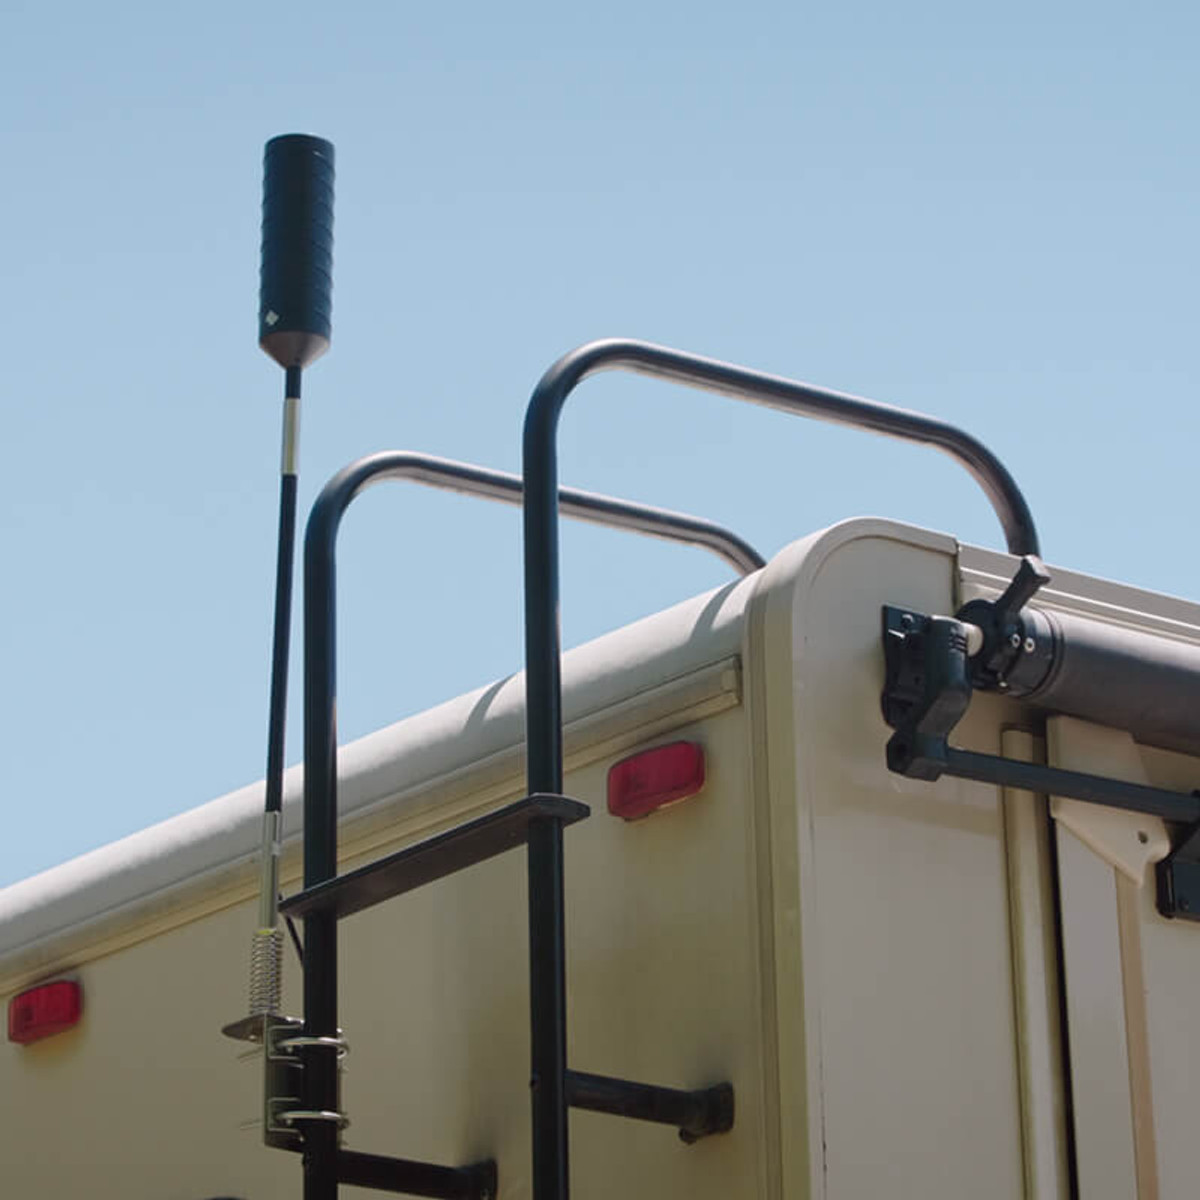 weBoost Drive X RV Cell Phone Signal Booster Outside Antenna - 651410